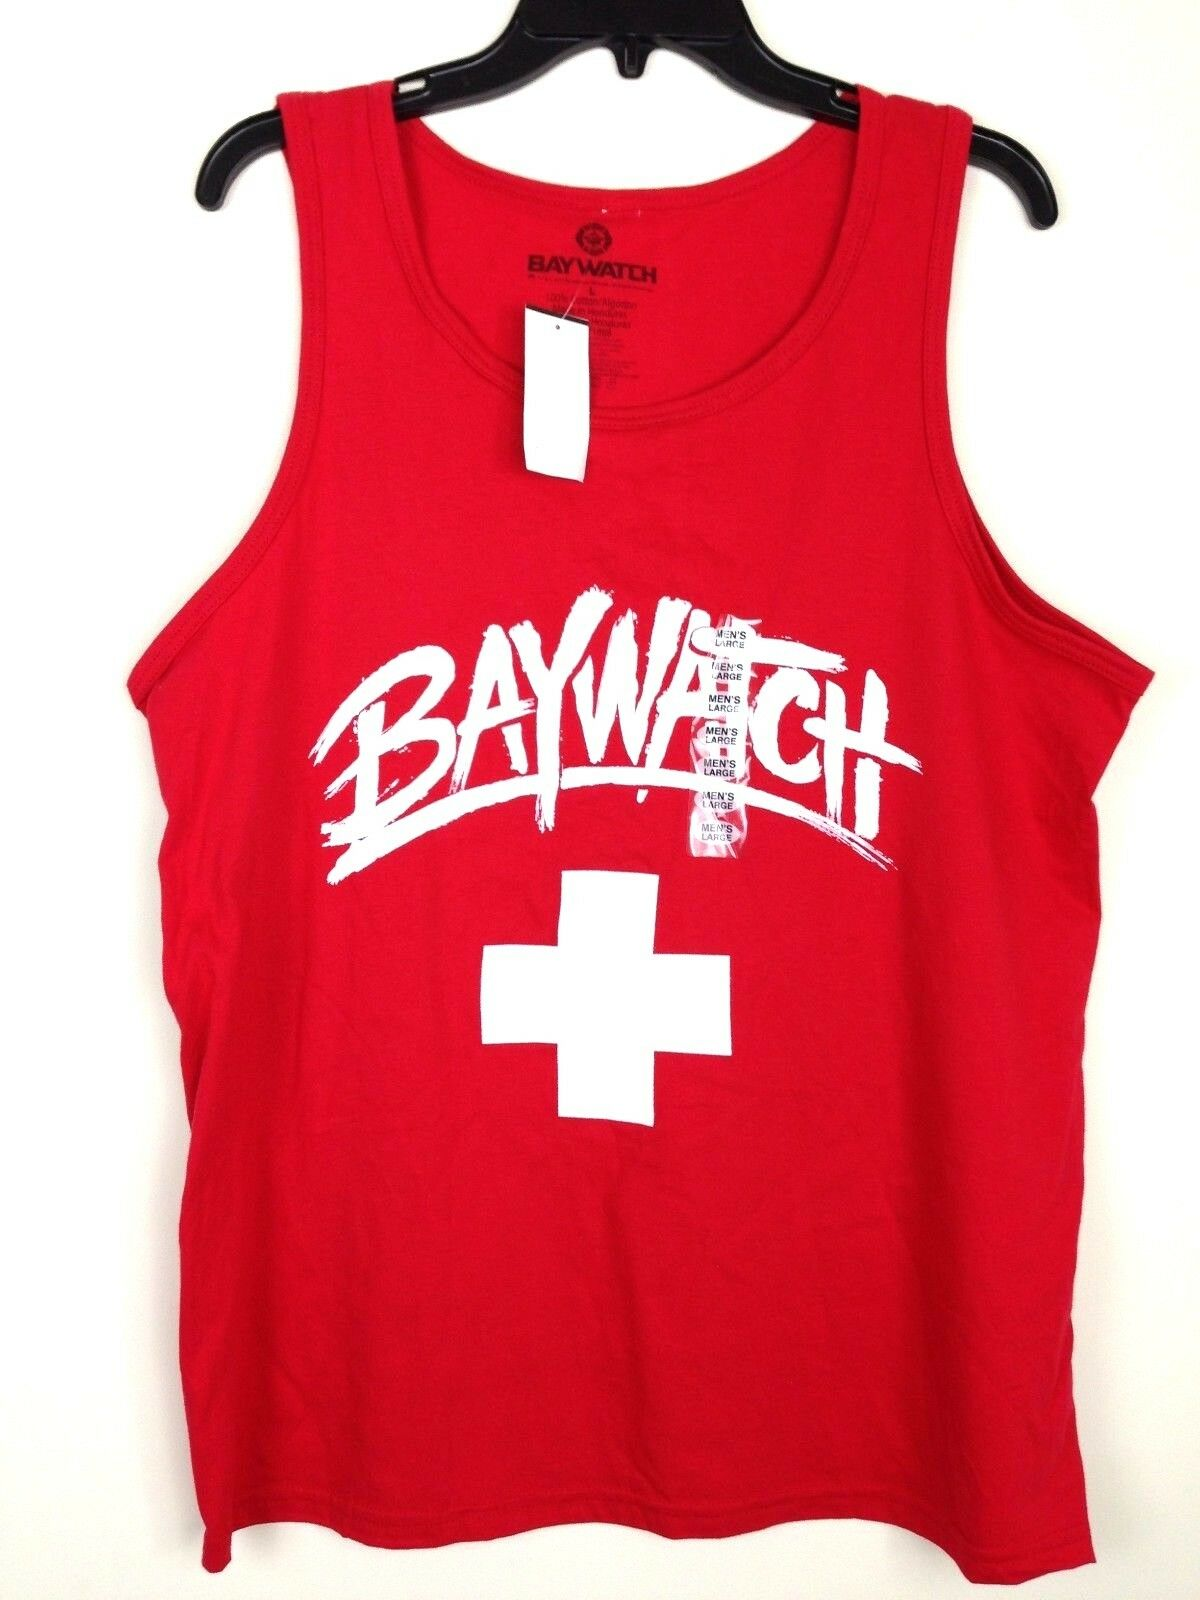 254e67fe566ea Baywatch T-shirt Men s 100 Cotton Red Tank Top TV Show XL for sale ...